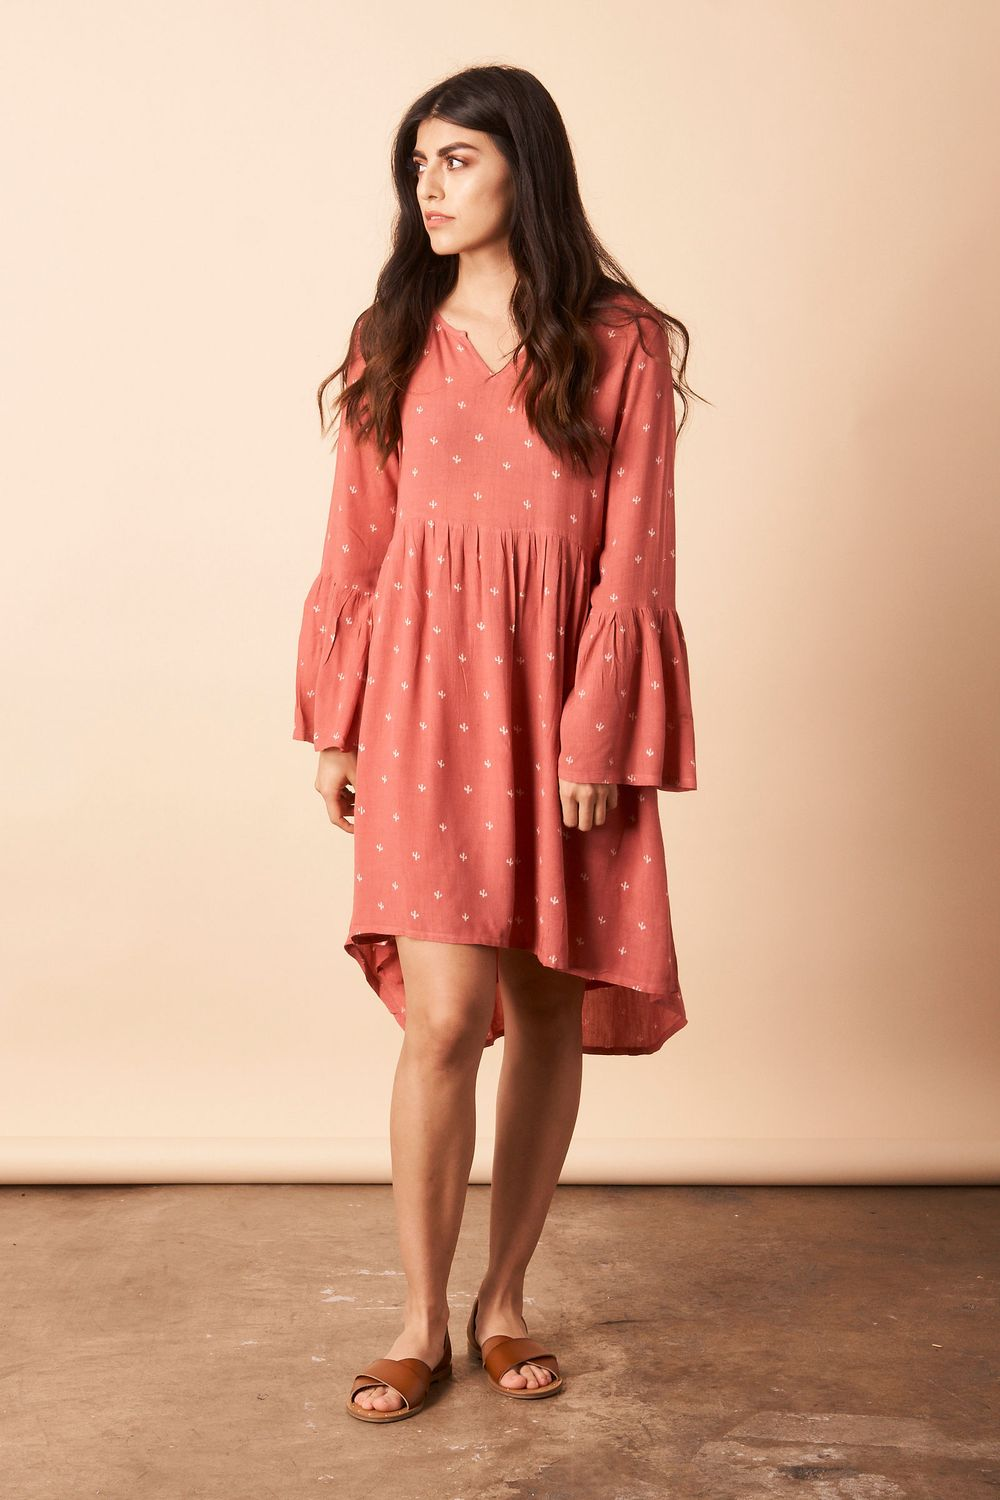 ethical dresses for women